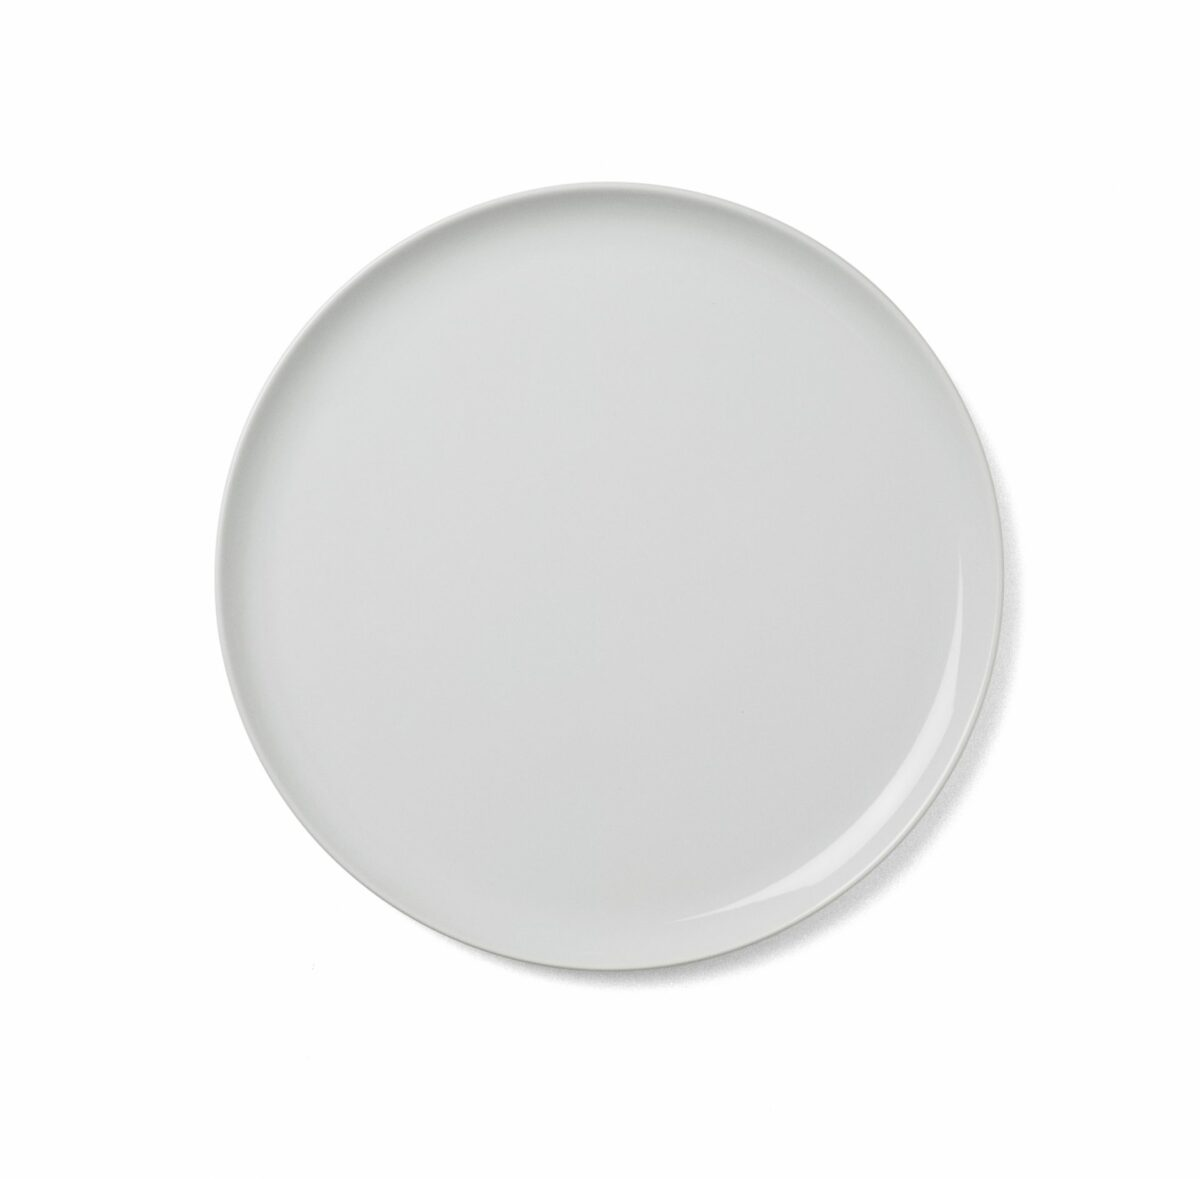 2014630 New Norm Lunch Plate O23 cm White Norm 01